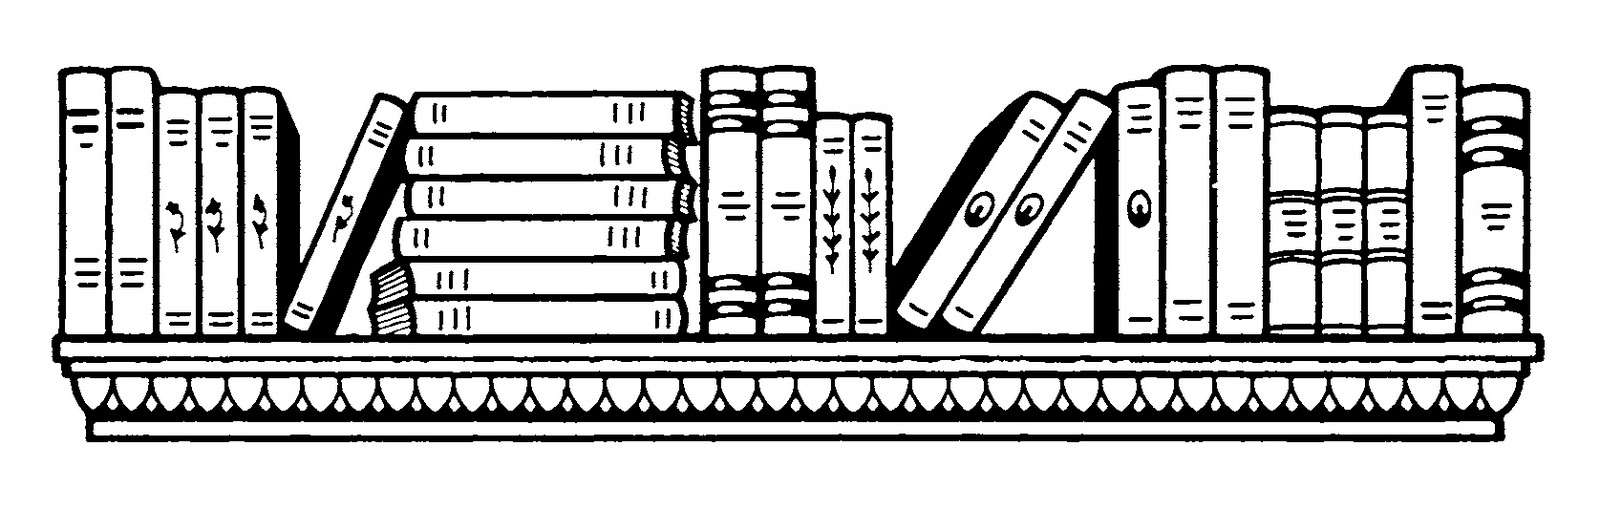 Book  black and white school books clipart black and white clip art library